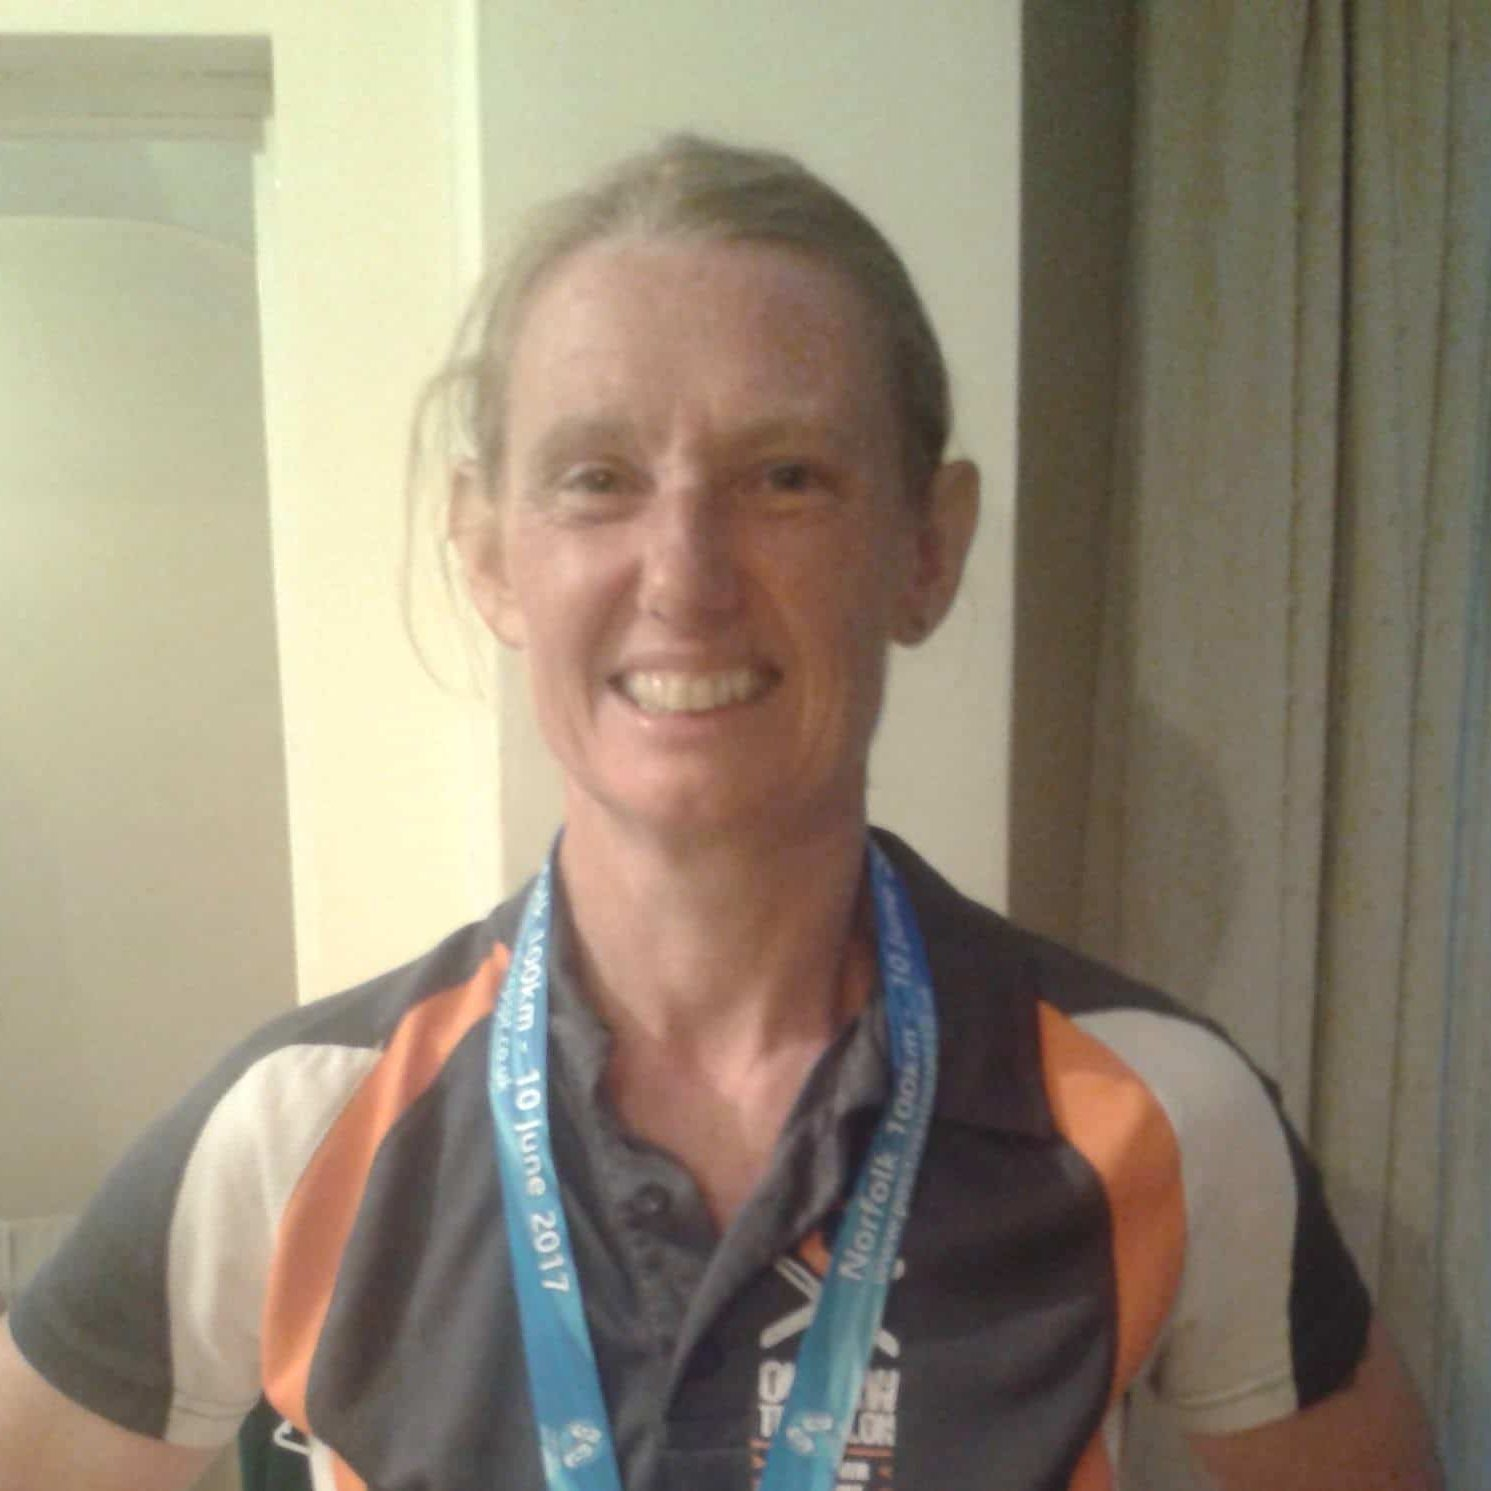 LYNN EMMETT - HEAD COACH - Athletics Coach (L2) Endurance